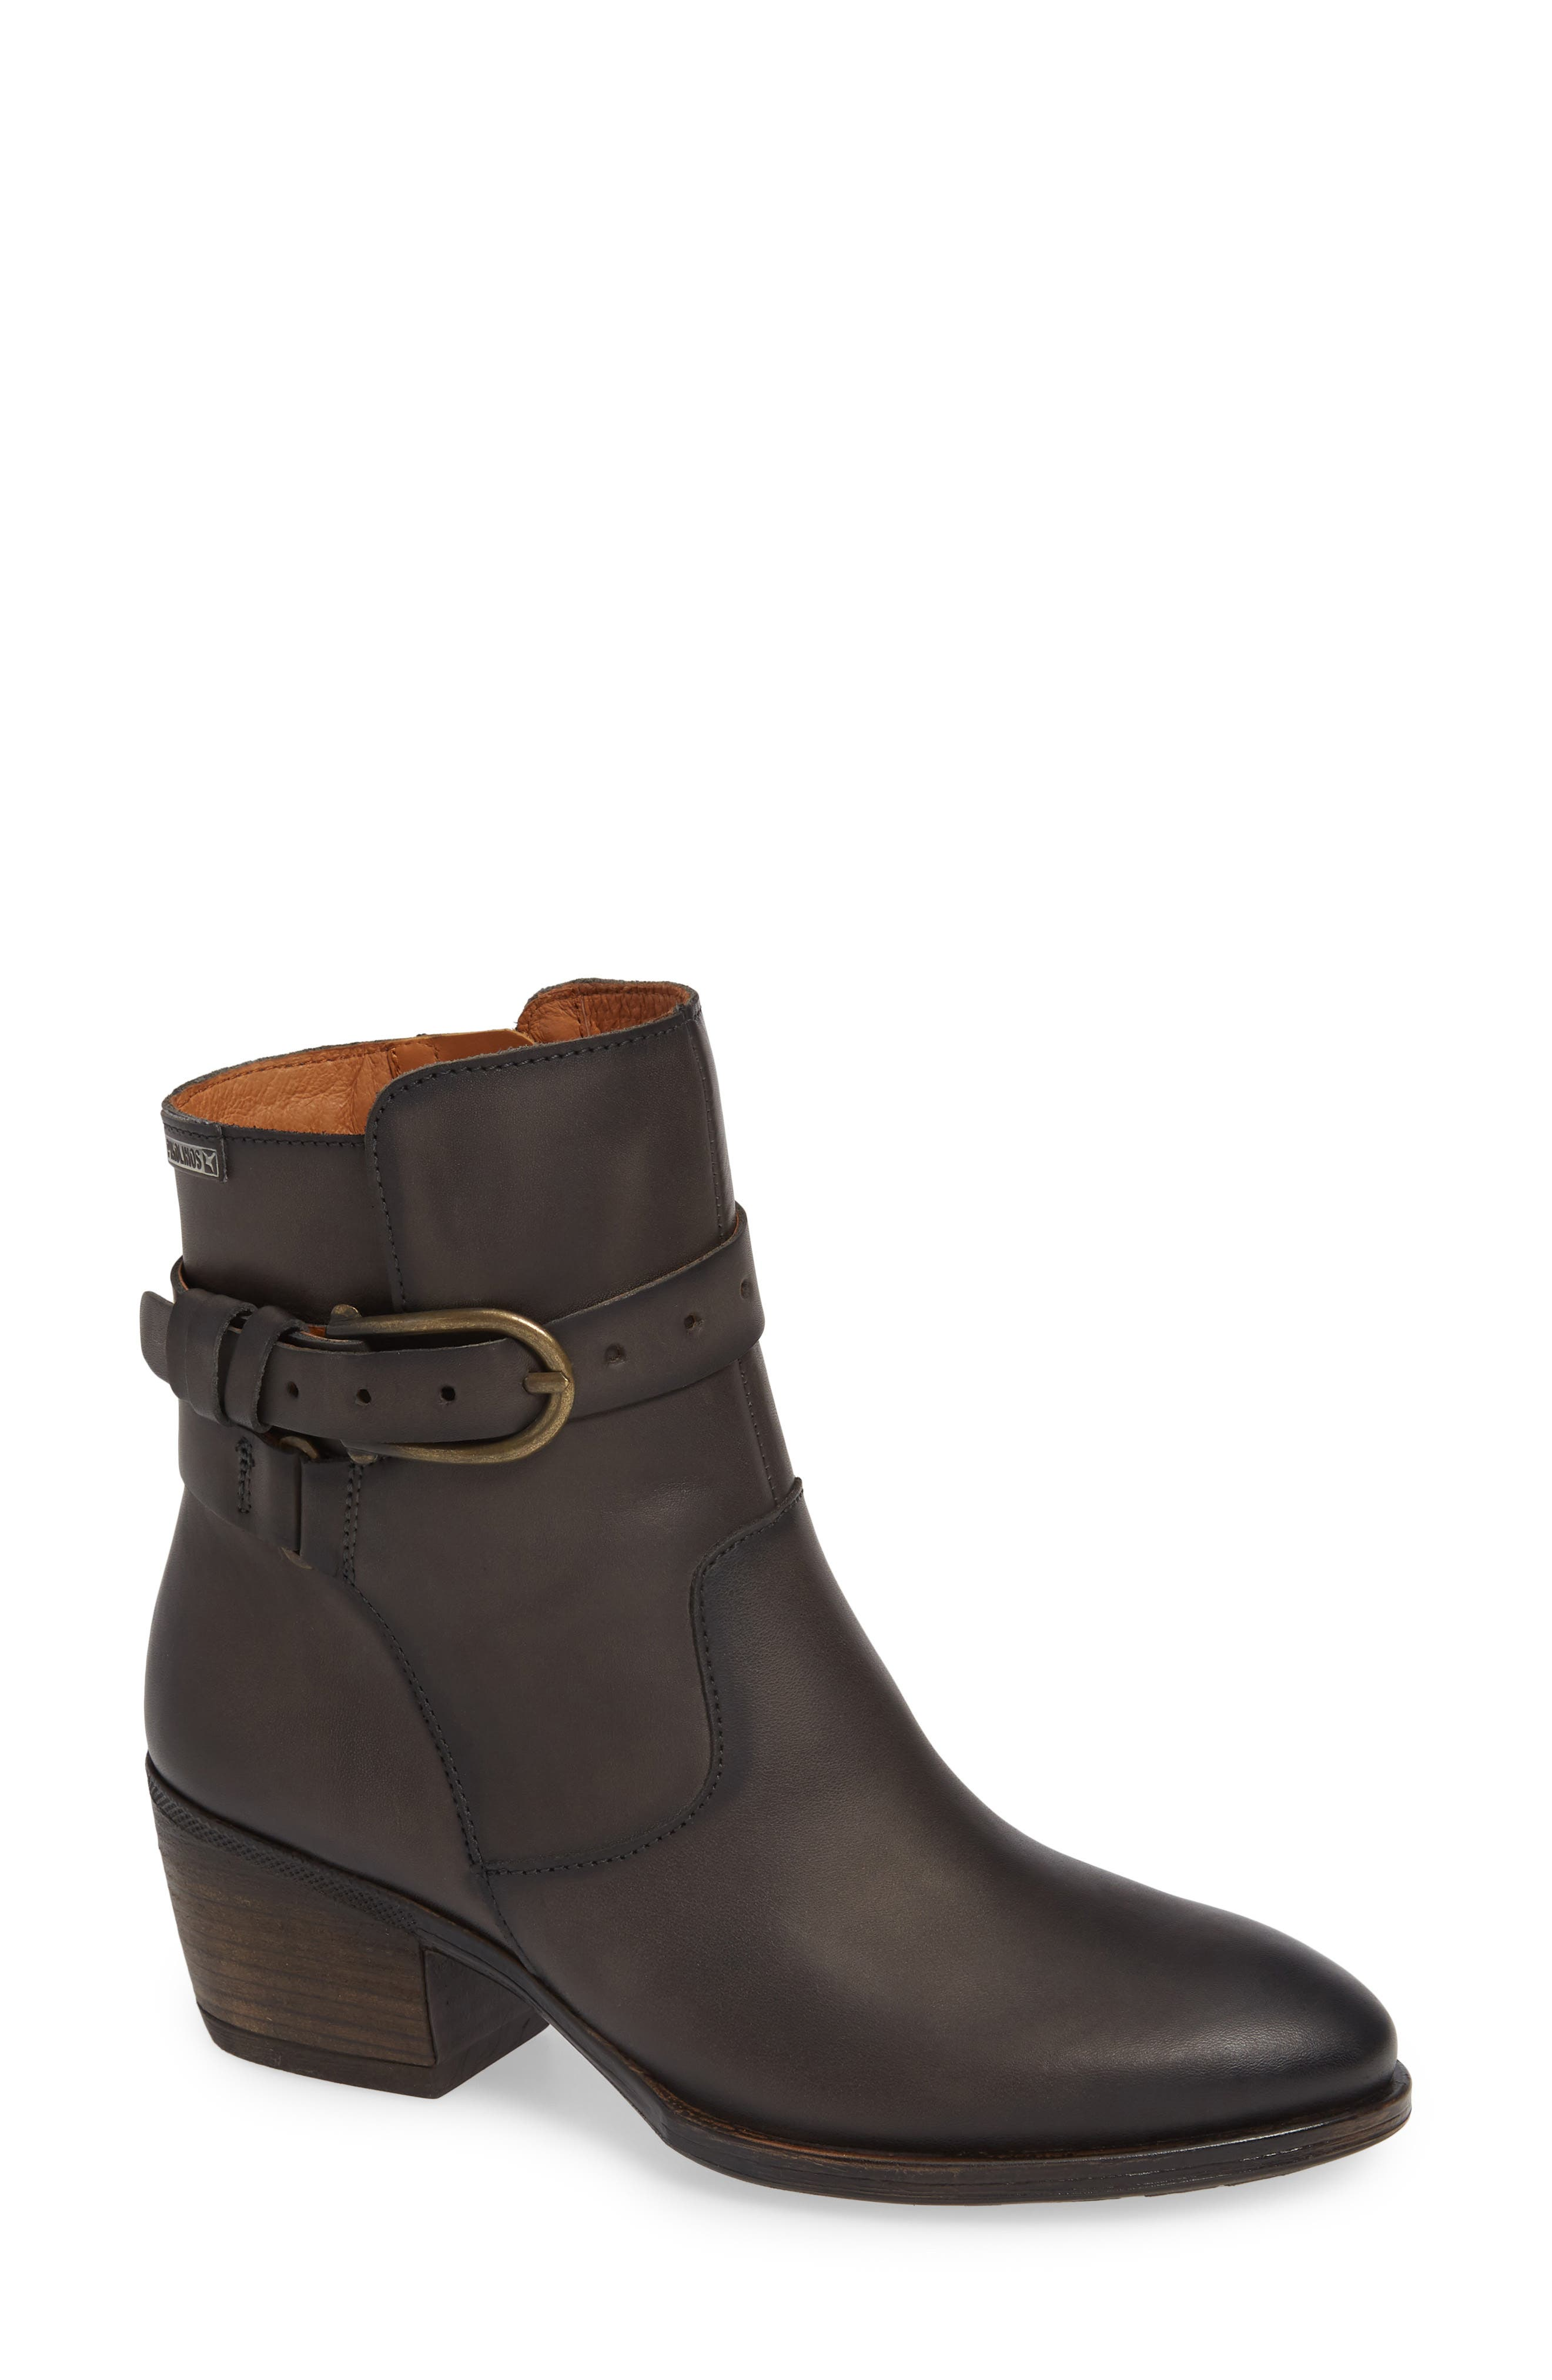 Baqueira Bootie,                             Main thumbnail 1, color,                             LEAD LEATHER